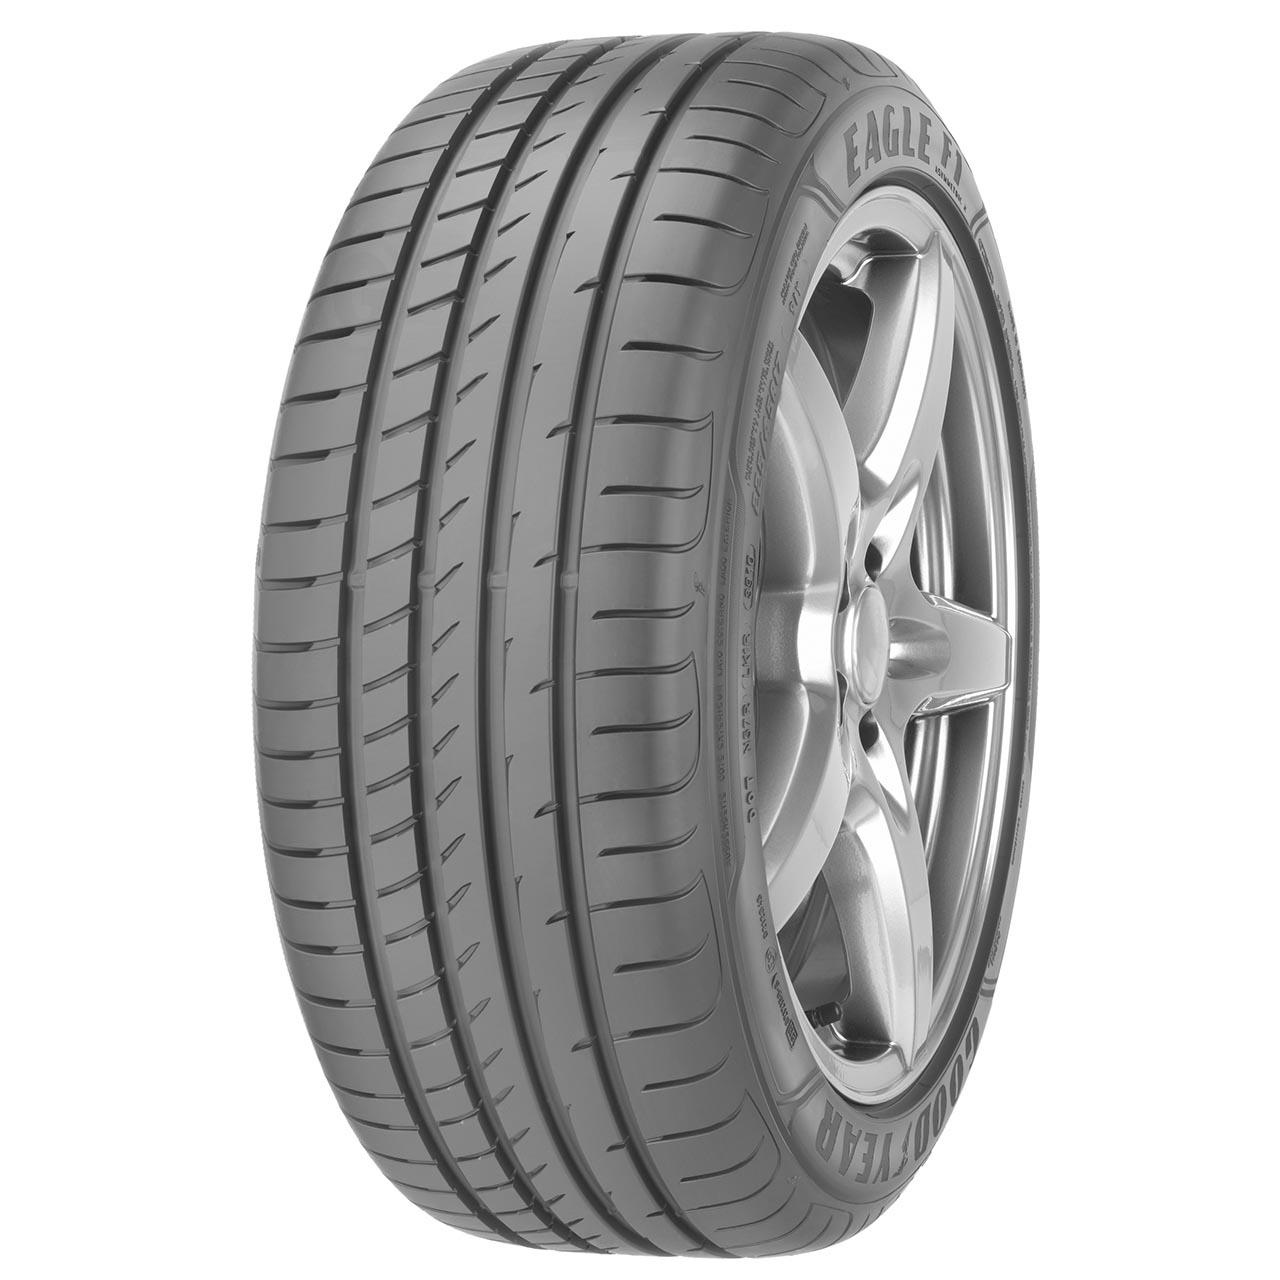 Goodyear Eagle F1 Asymmetric 2 265/40R18 101Y XL FP